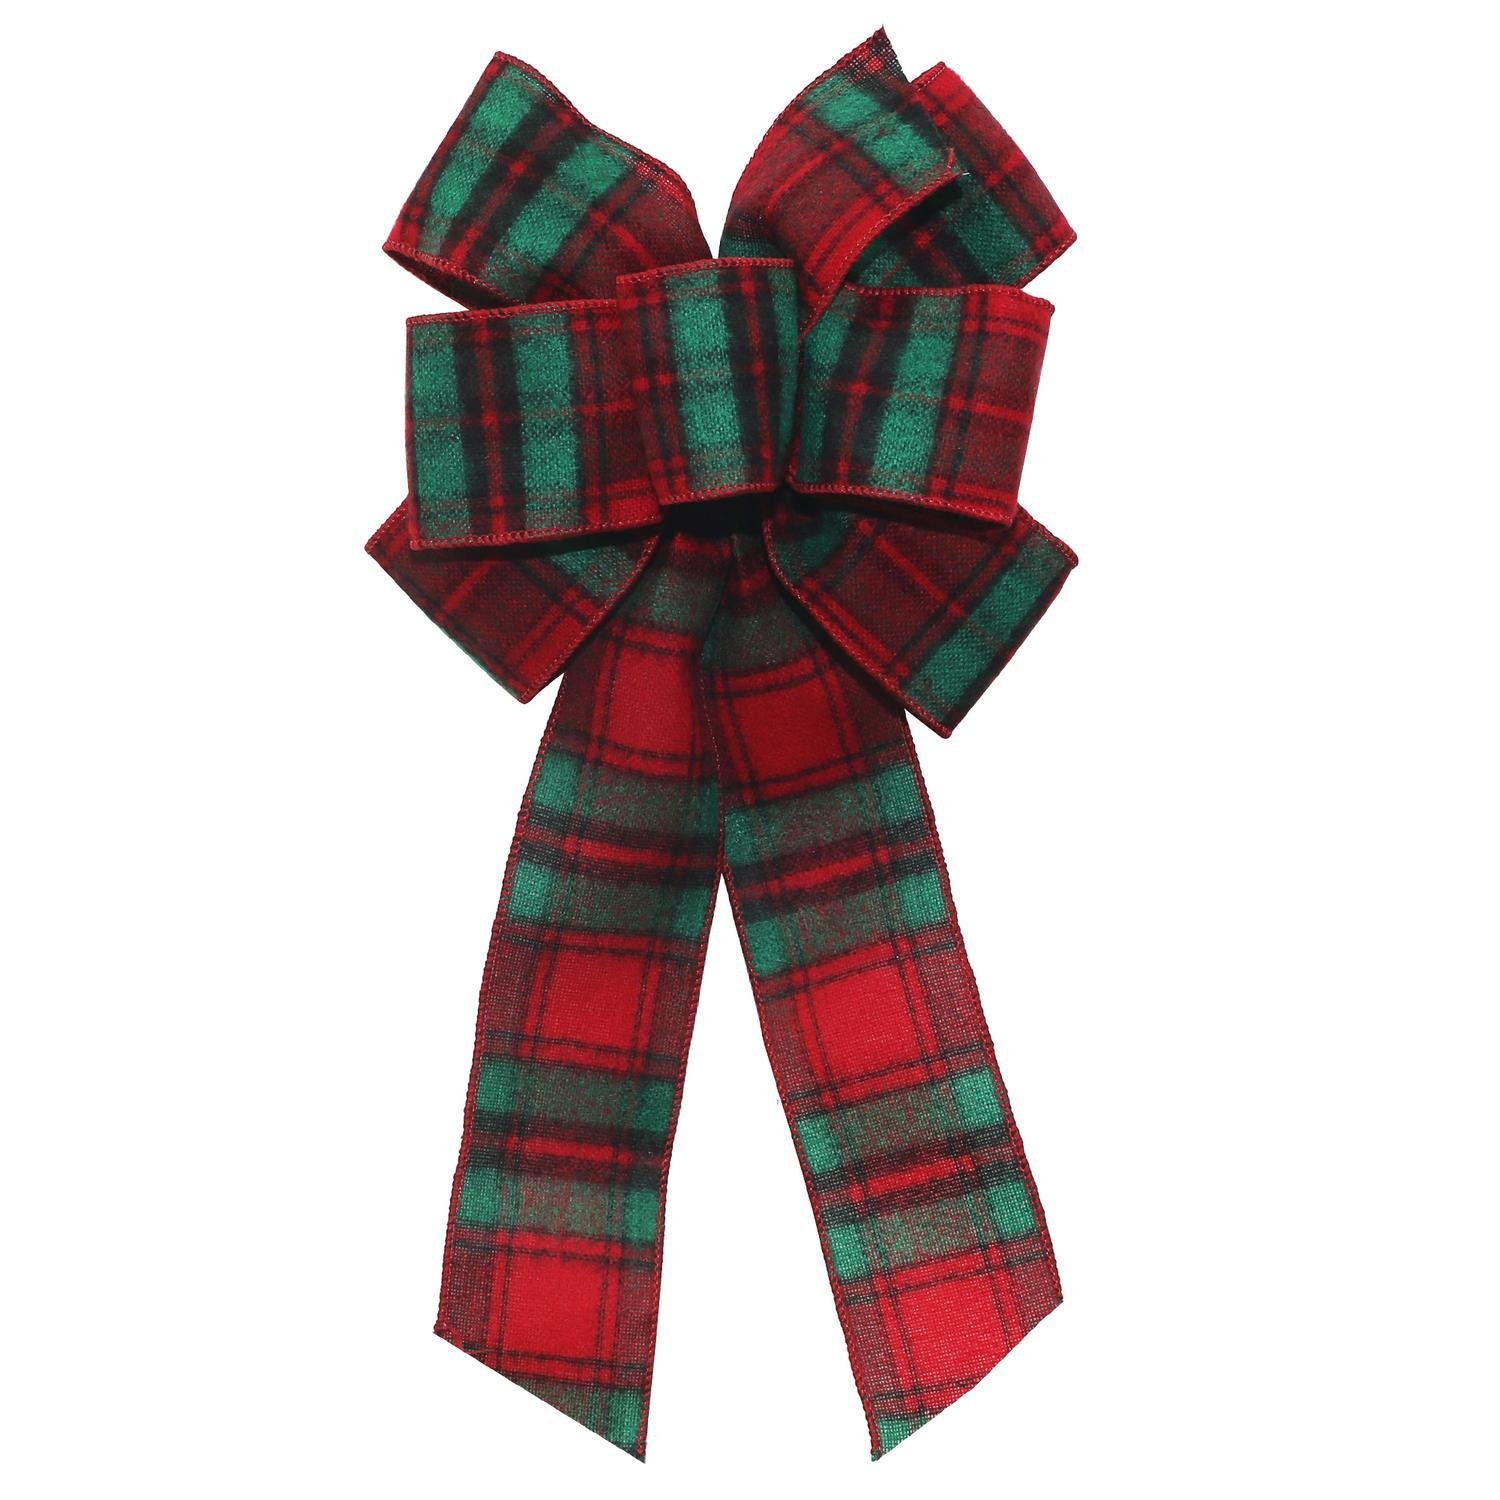 St. Nicks Choice 8'' x 16'' Decorative Red and Green Plaid 6 Loop Wool Christmas Bow Decoration